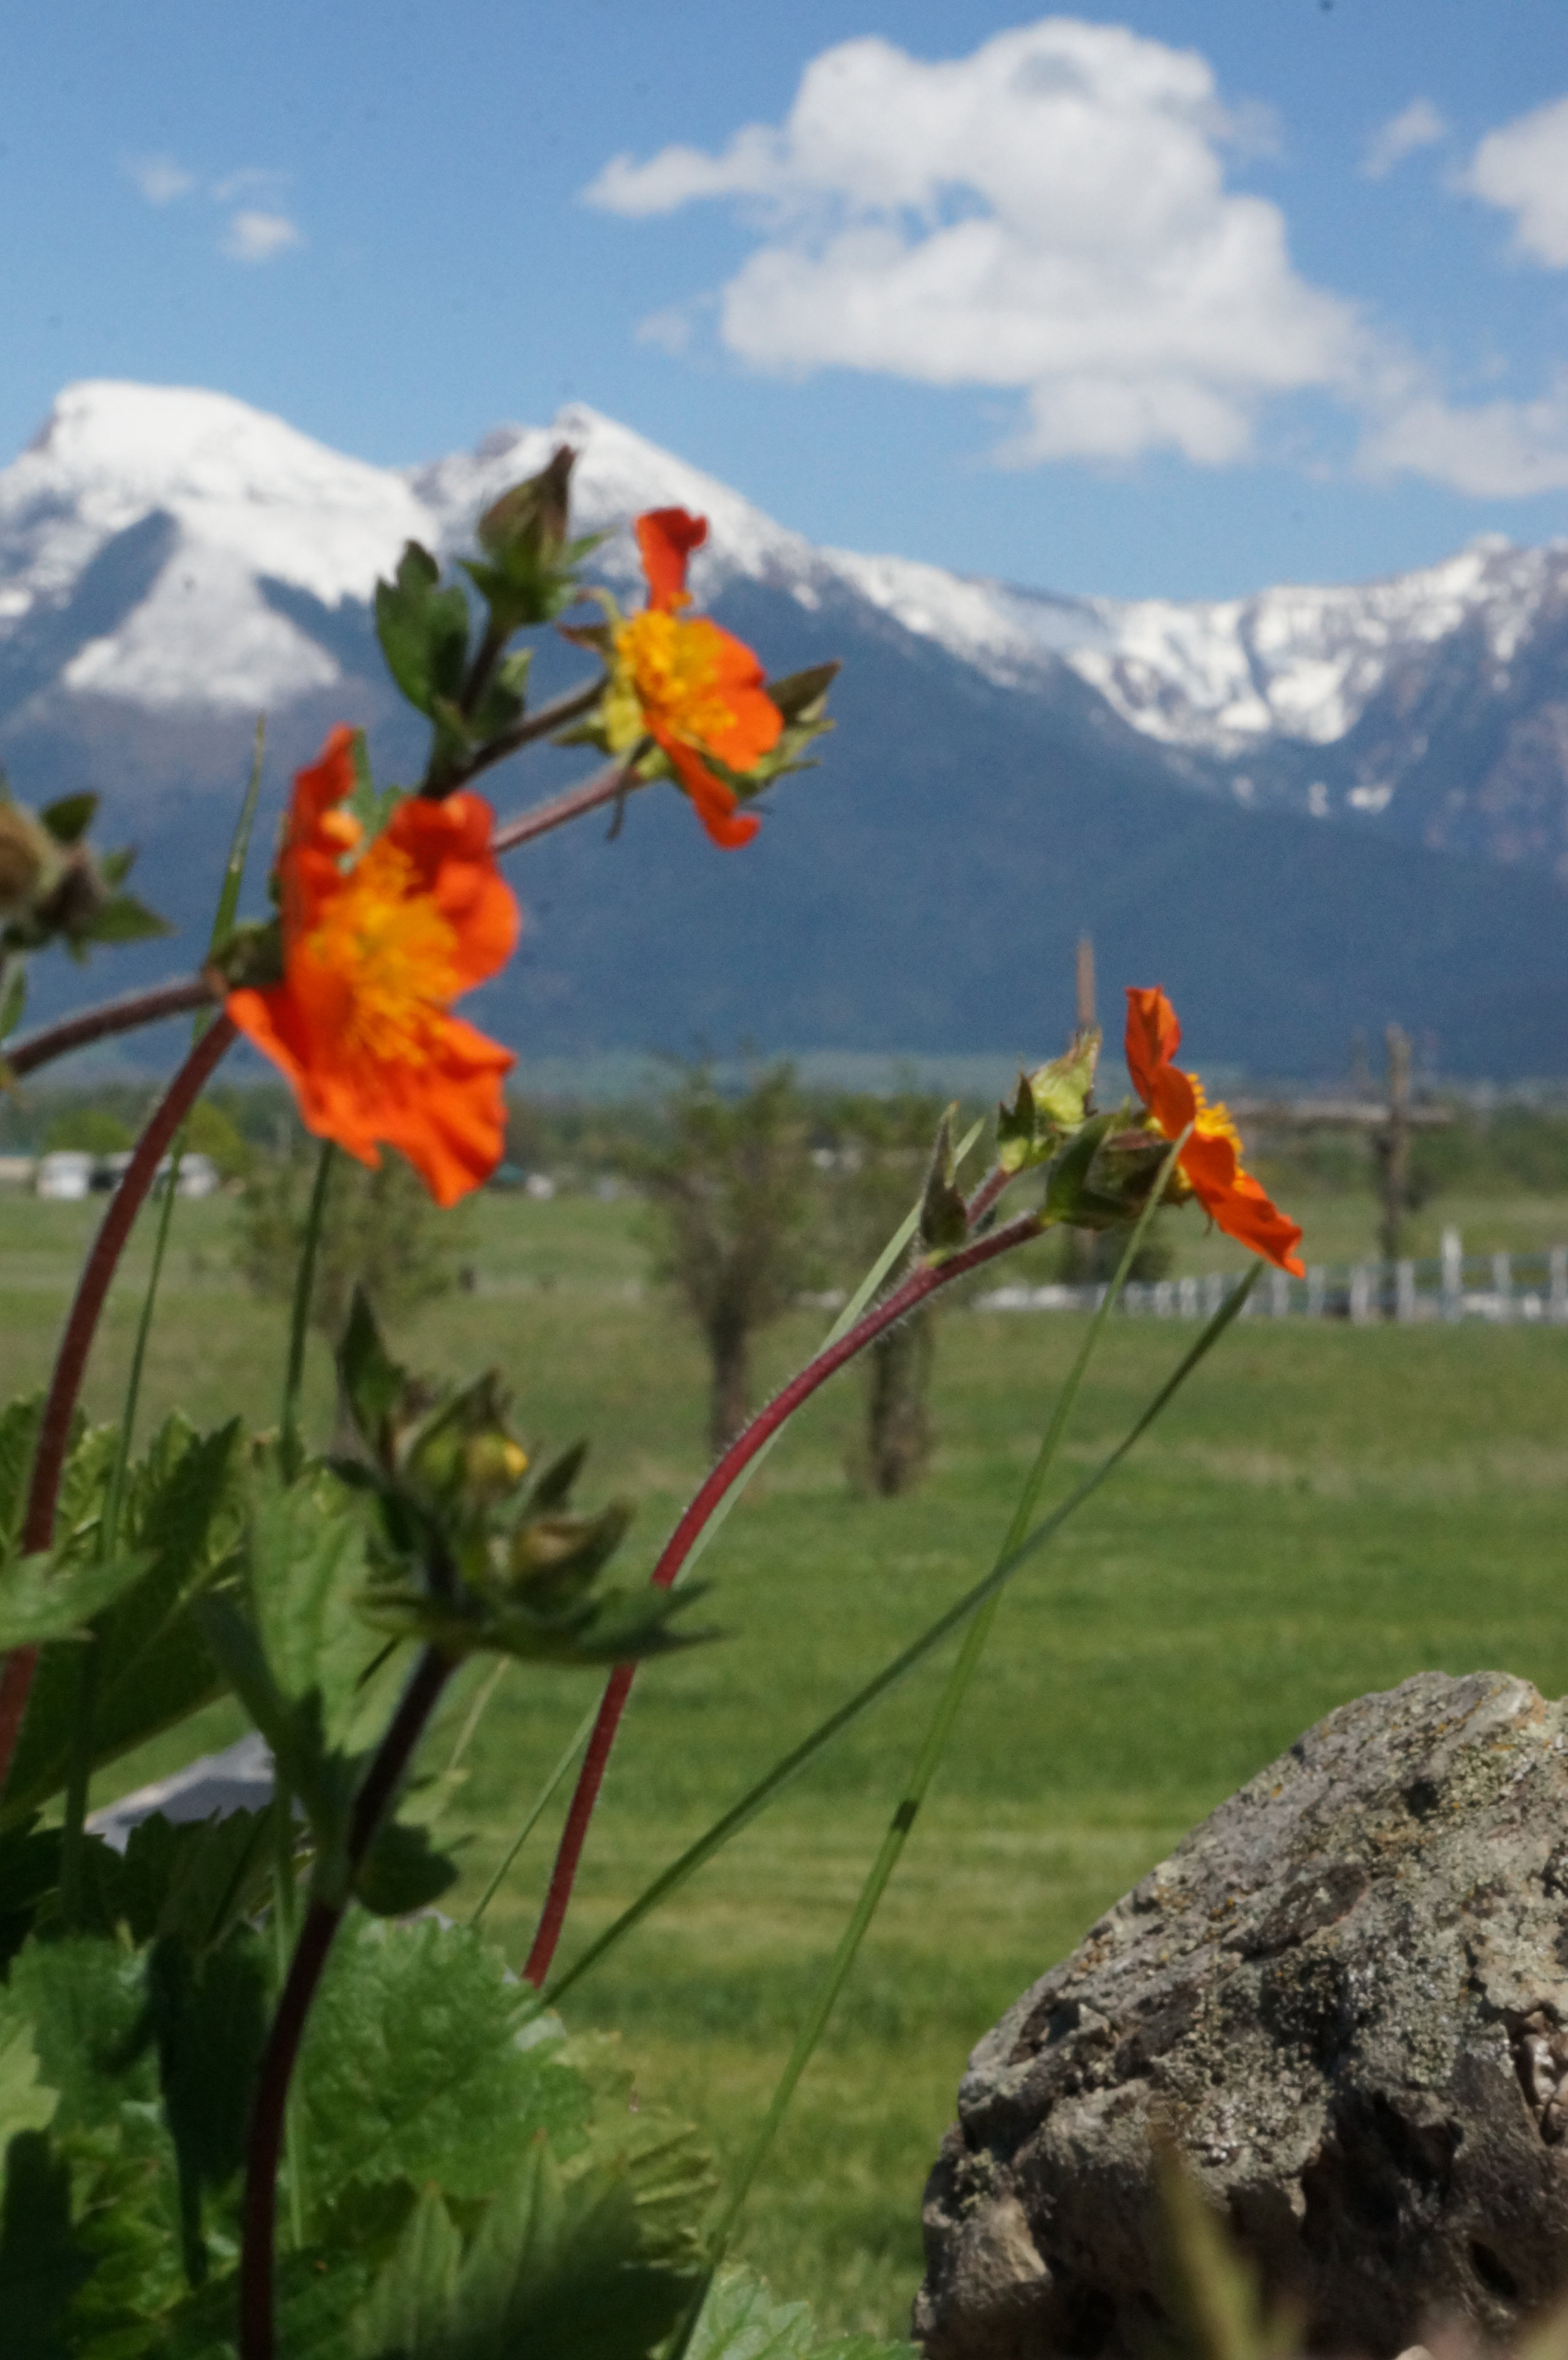 Spring Flowers in Bloom at Rugged Horizon